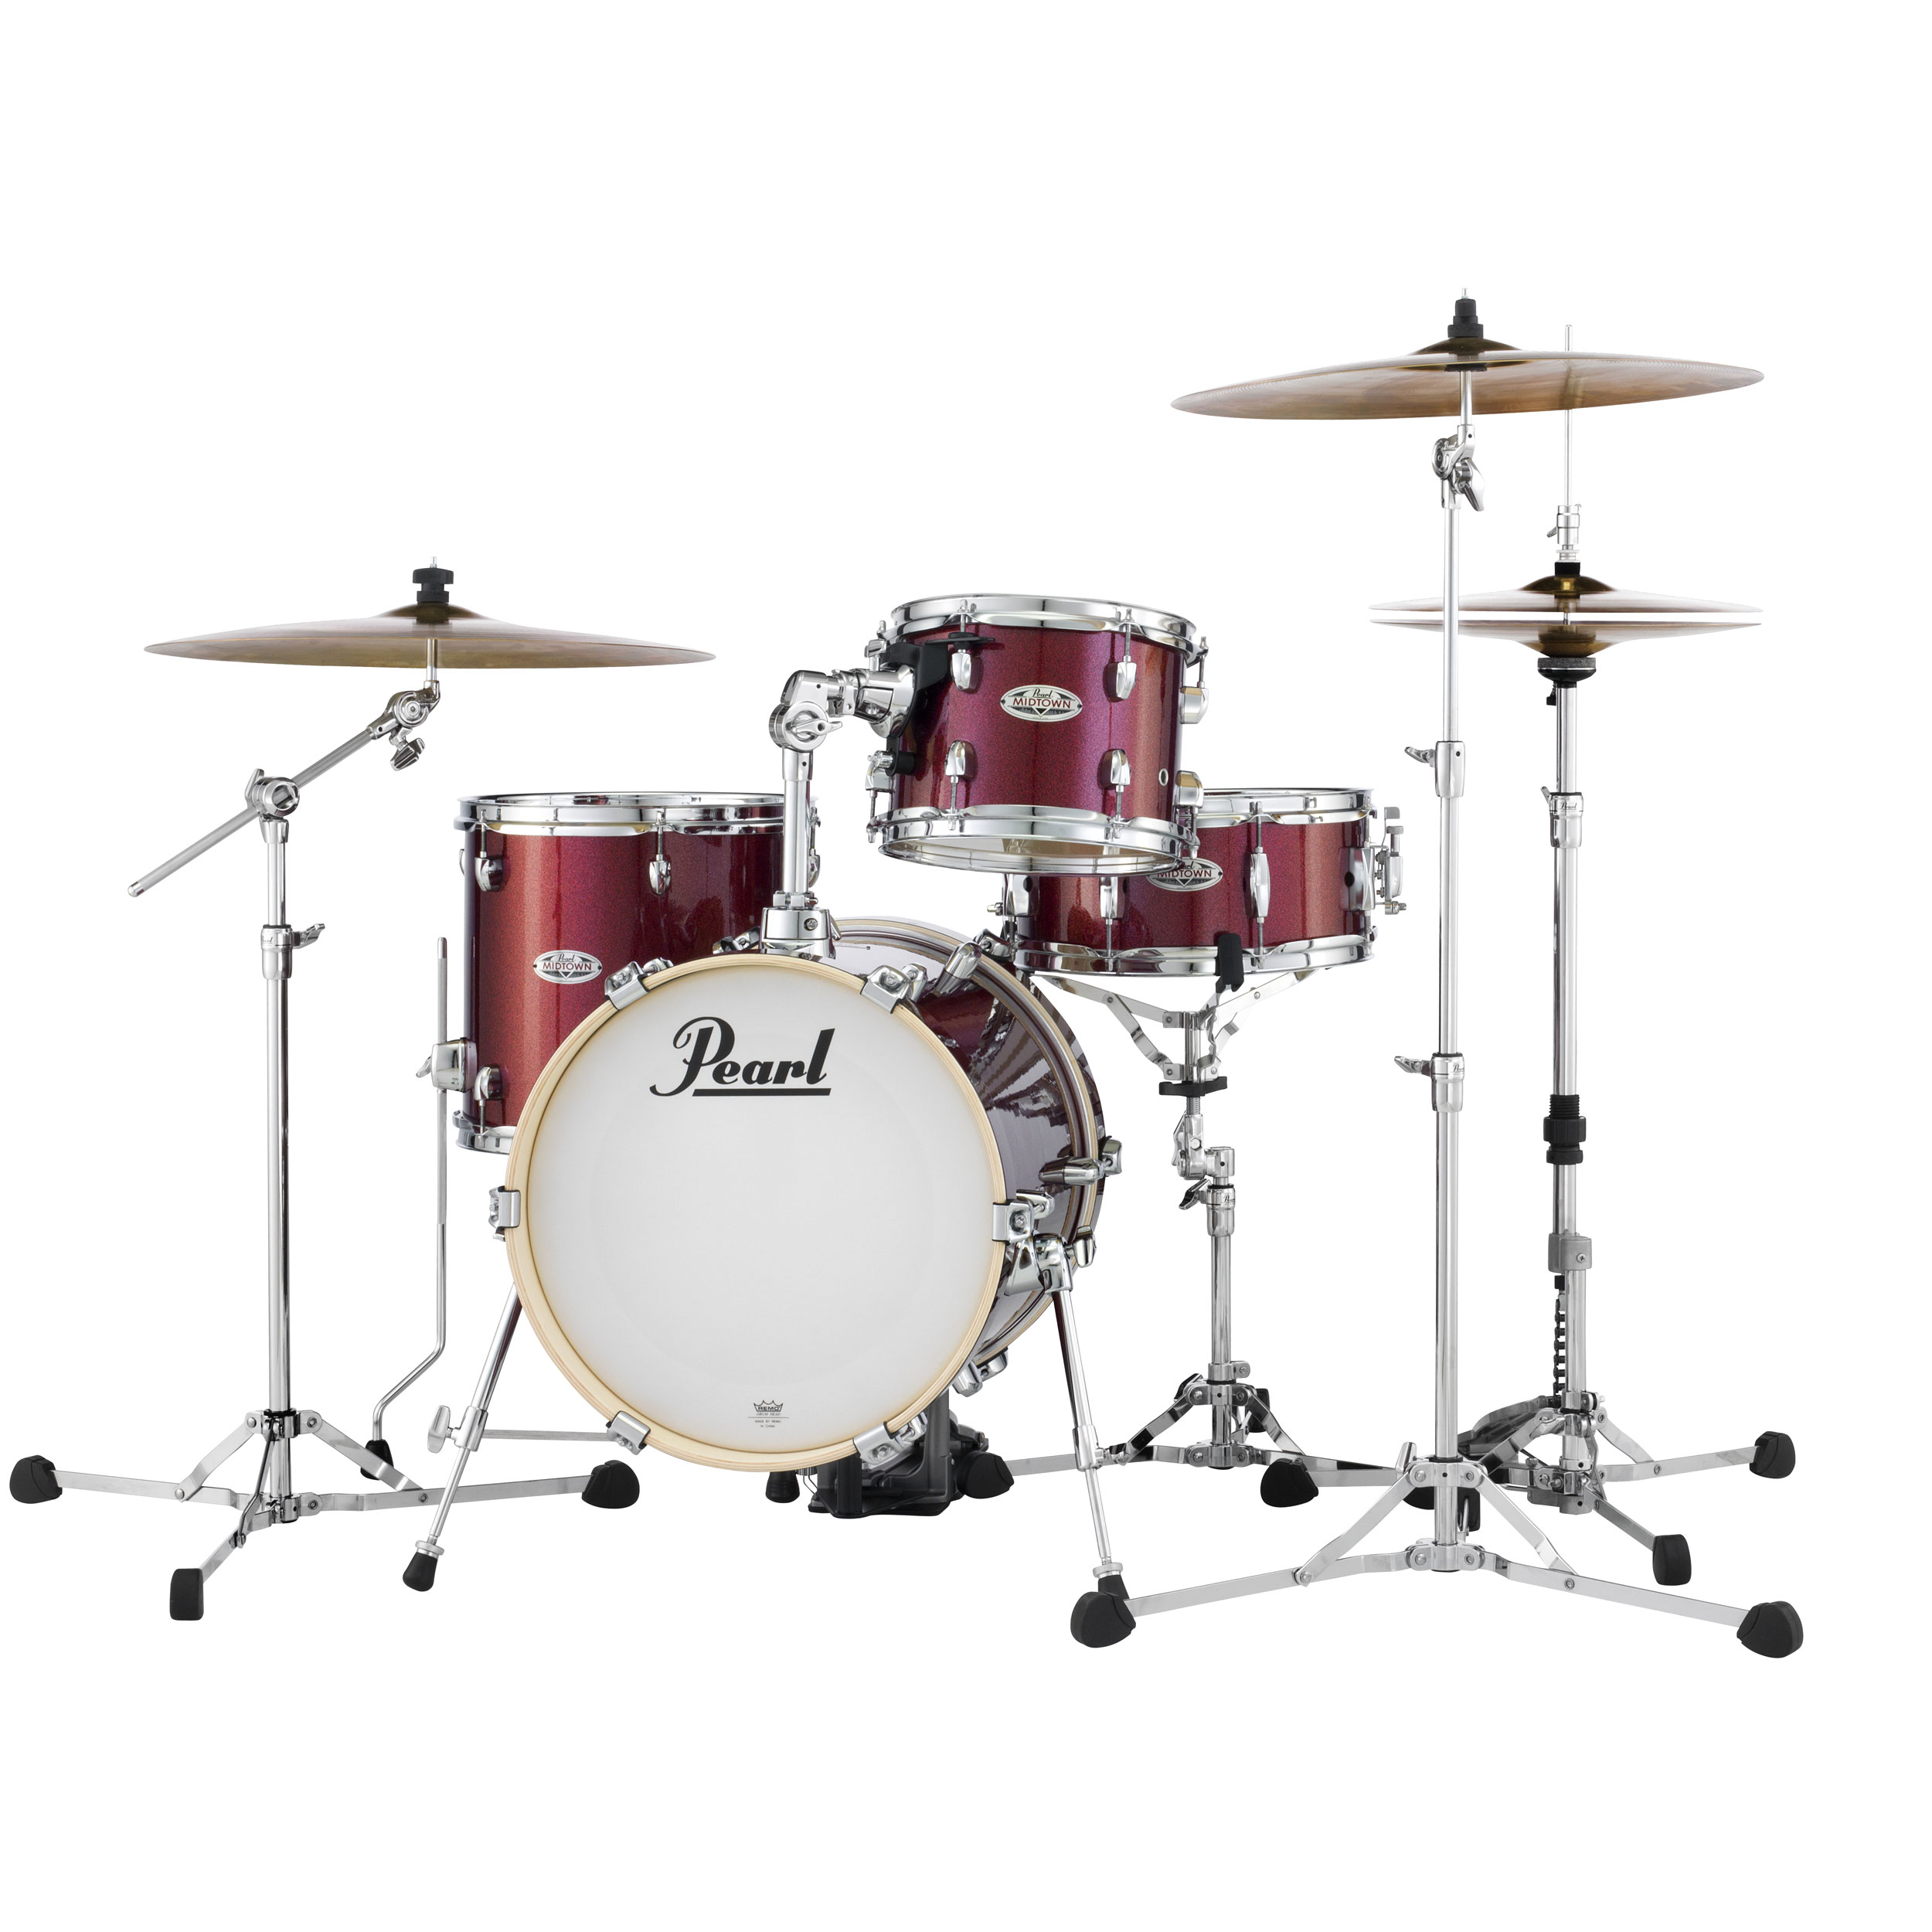 "Pearl Midtown 4-Piece Drum Set Shell Pack (16"" Bass, 10/13"" Toms, 13"" Snare) with Bags"